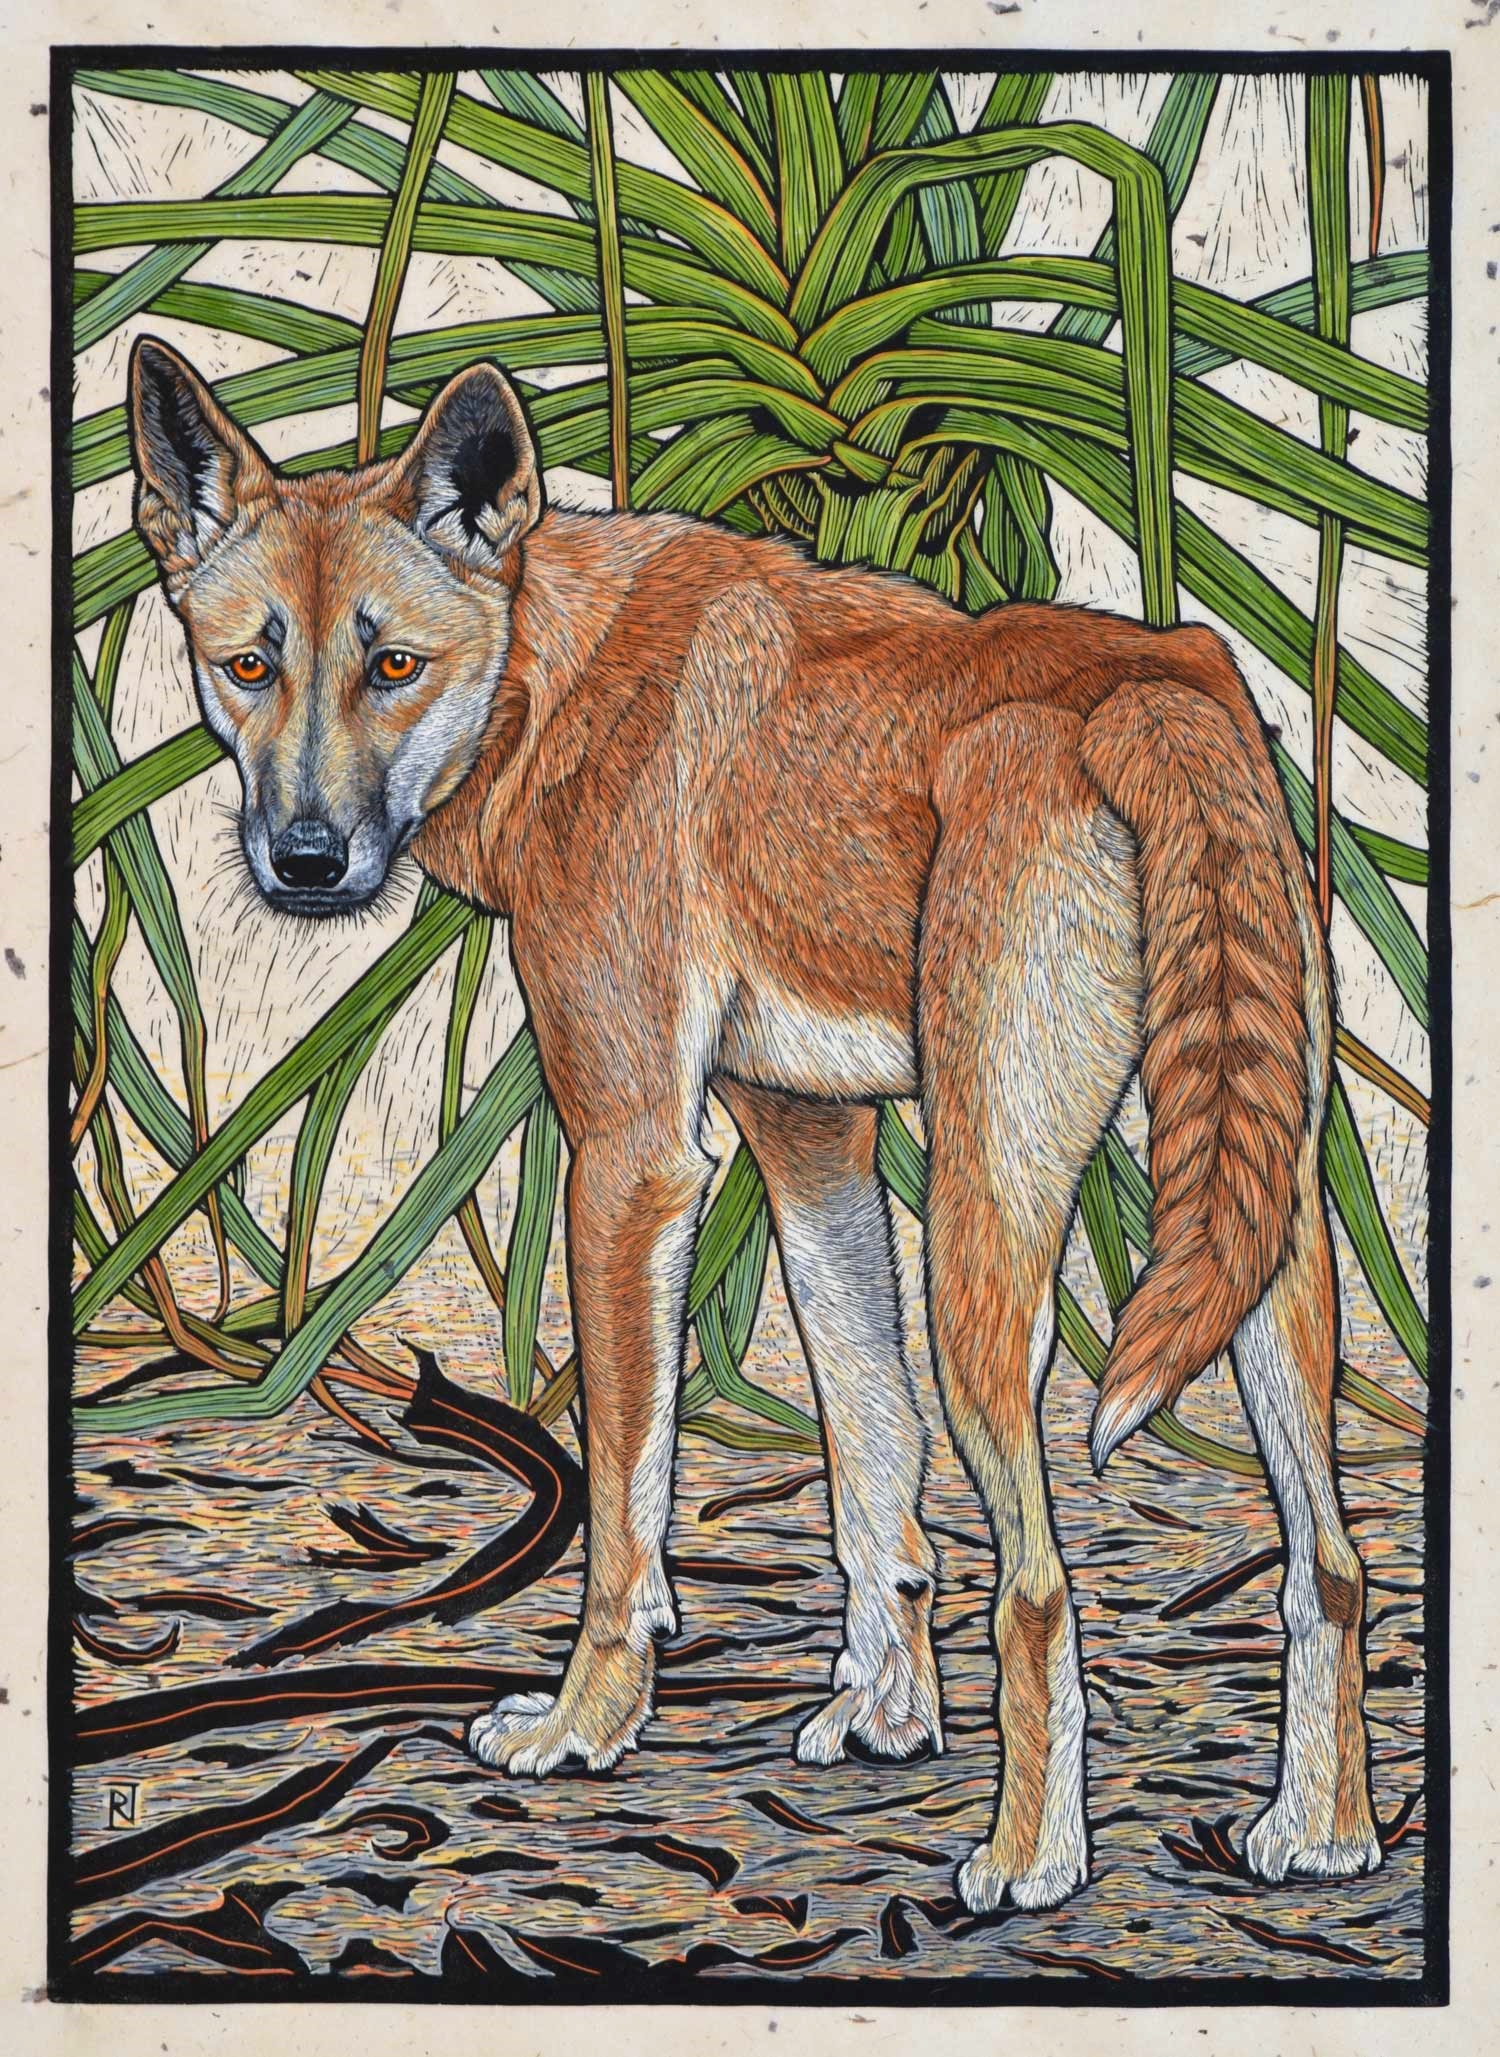 Dingo, Northern Territory  71 x 51 cm, Edition of 50  Hand-coloured linocut on handmade Japanese paper  $1,700